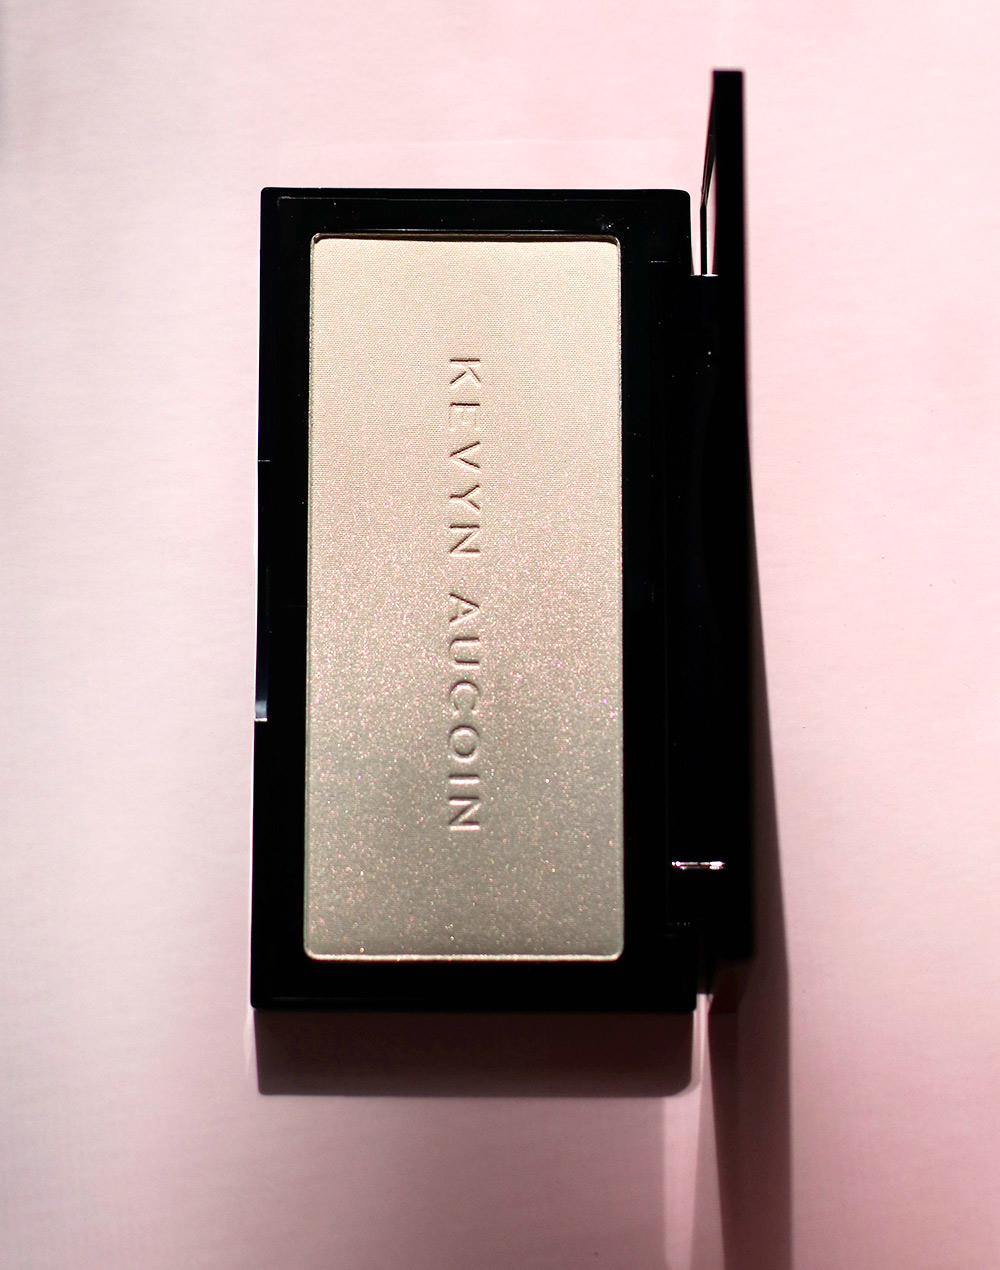 kevyn-aucoin neo setting powder top